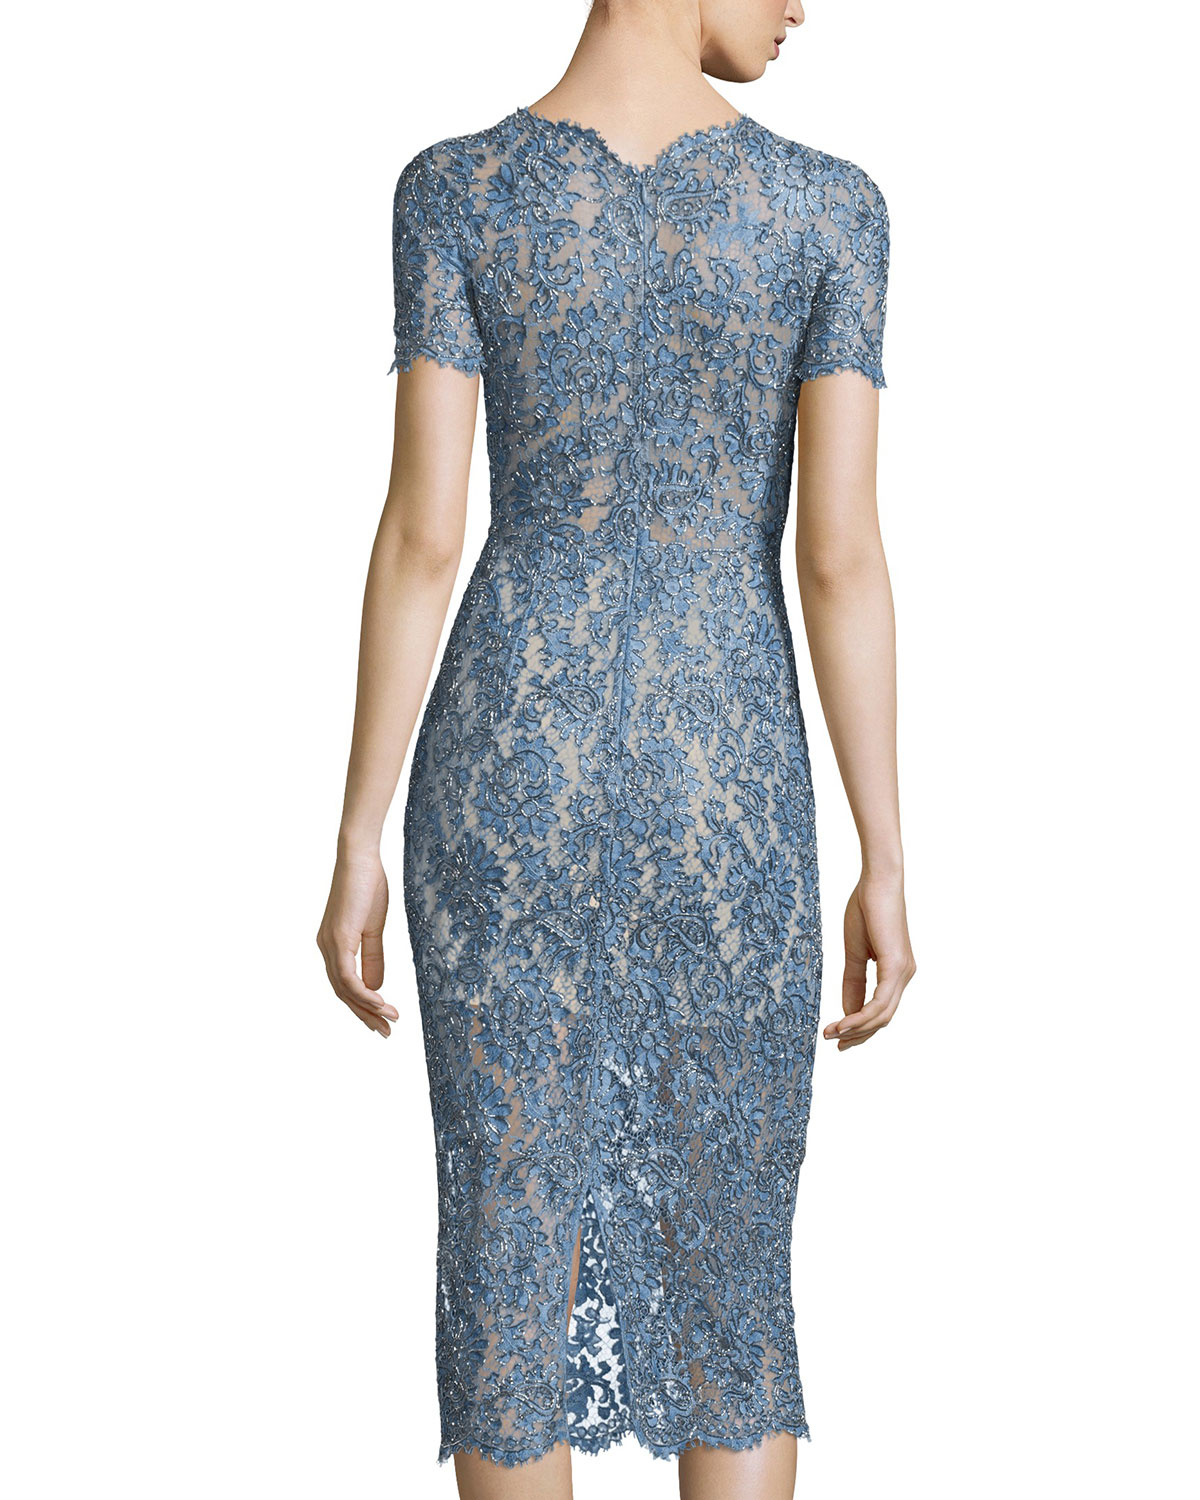 Lyst - Jenny Packham Lace Midi Cocktail Dress in Blue